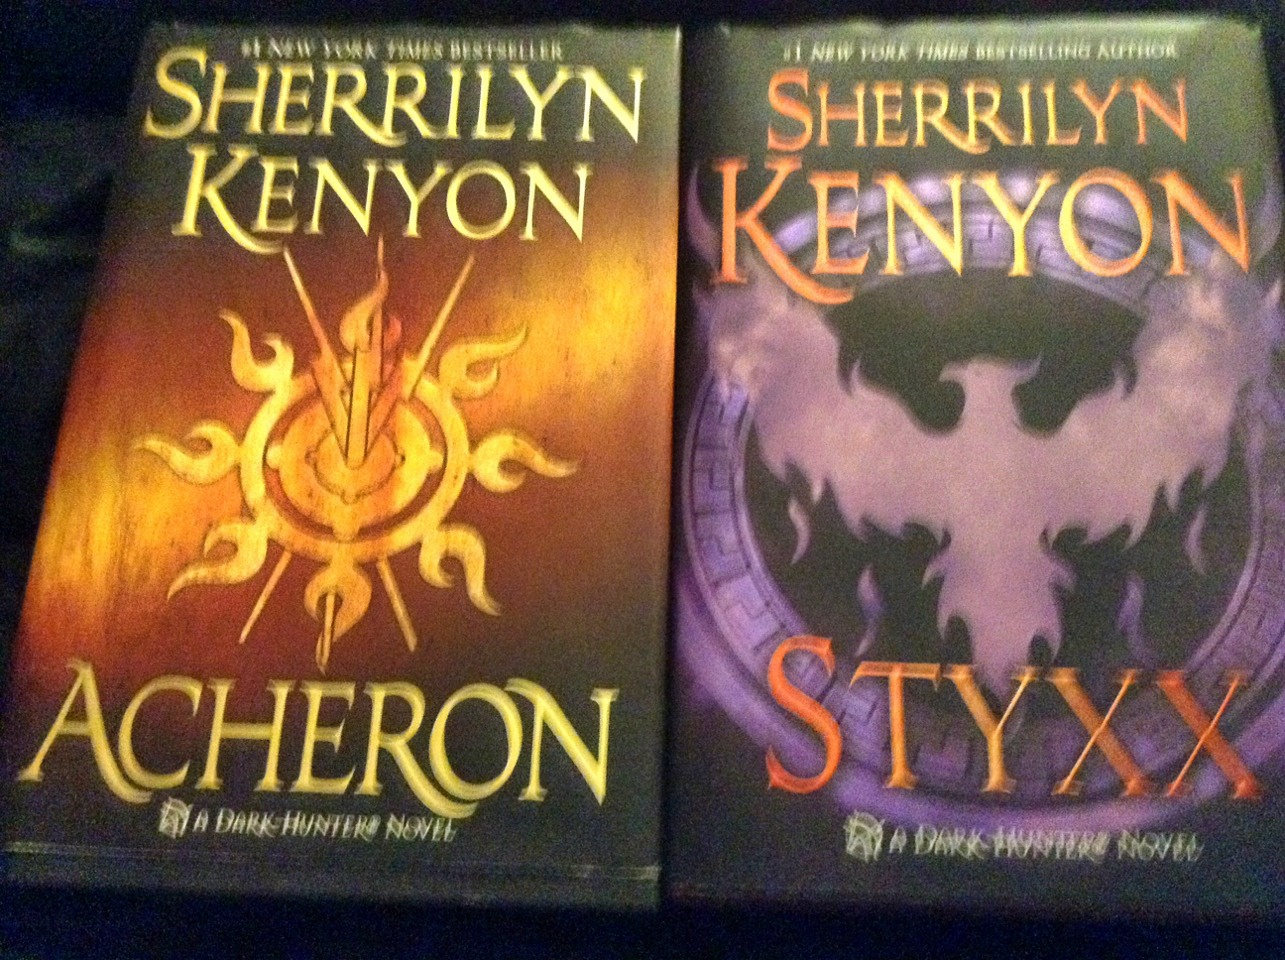 Dark hunter series by Sherrilyn Kenyon. These are my all time favourite books. There are tons of books in the series, mostly mushy romance, though I started with Acheron and understood fine. They're dark in nature, about twins with a brutal past. Read Acheron first, you'll get a lot more out of it.